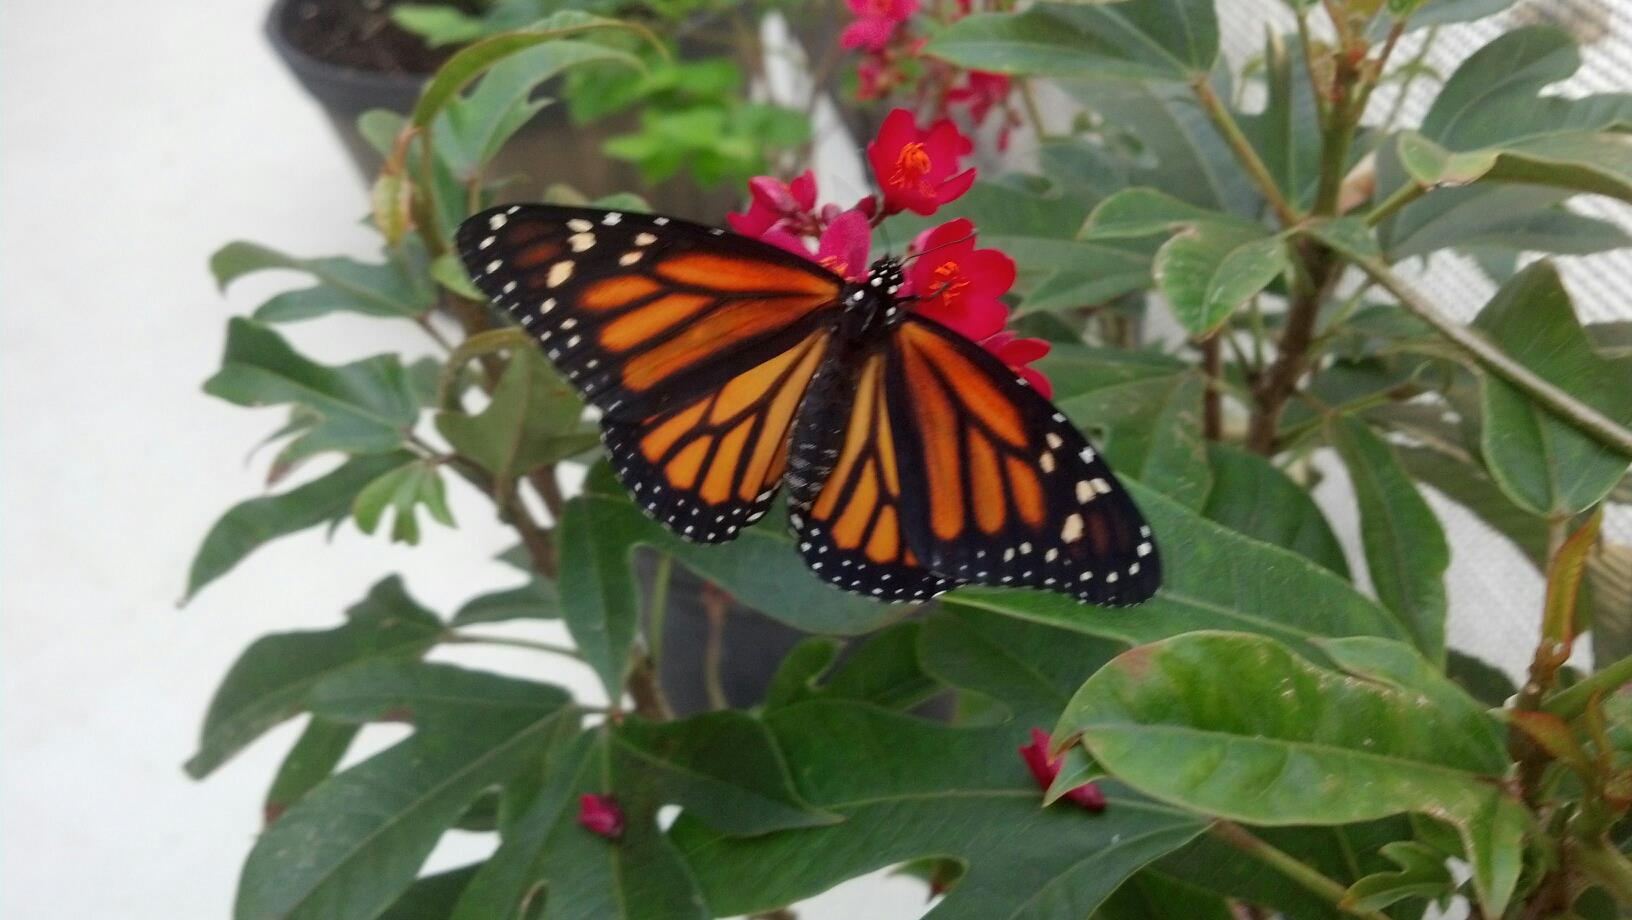 Watching the Monarch Butterflies take their first flight was an amazing site to see.